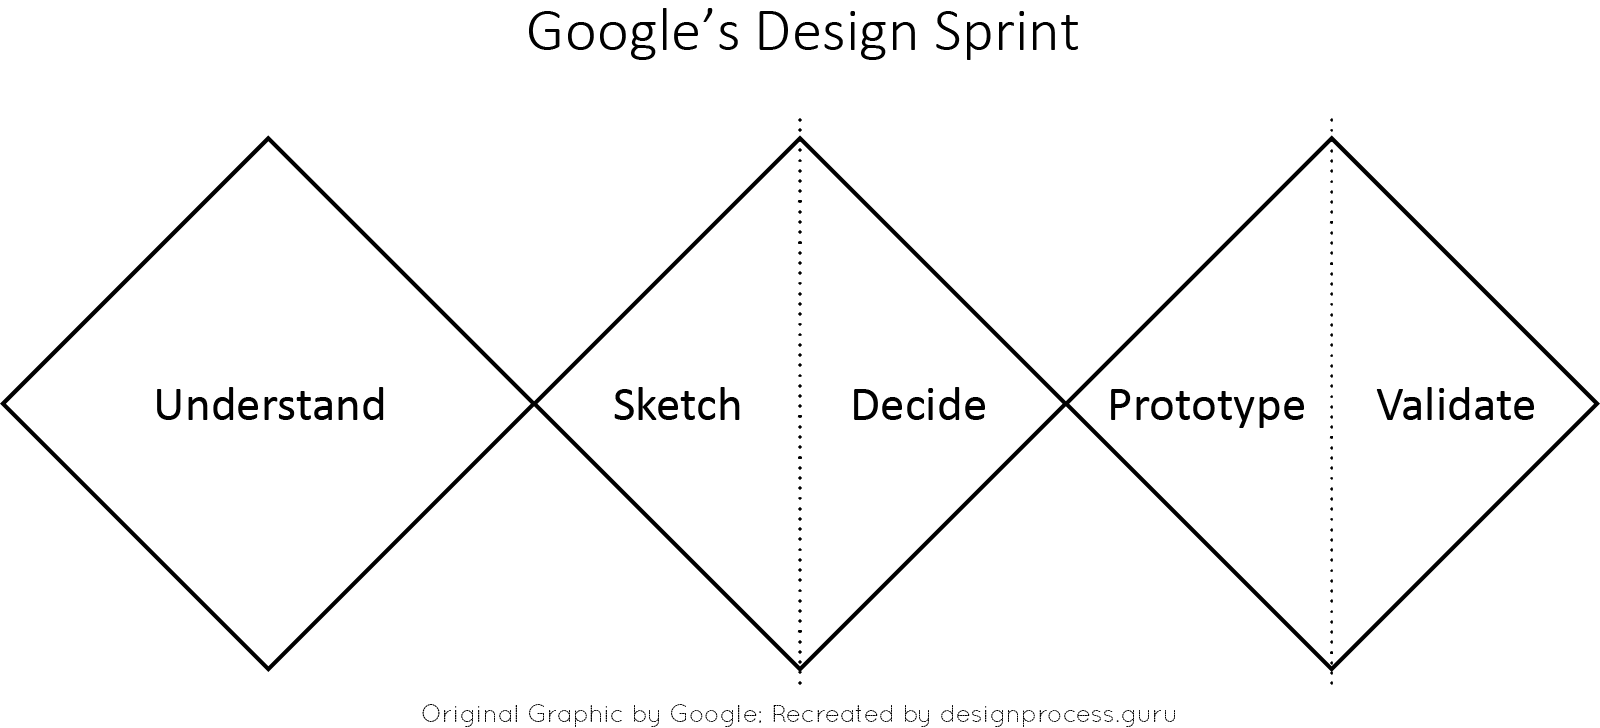 Google's Design Sprint